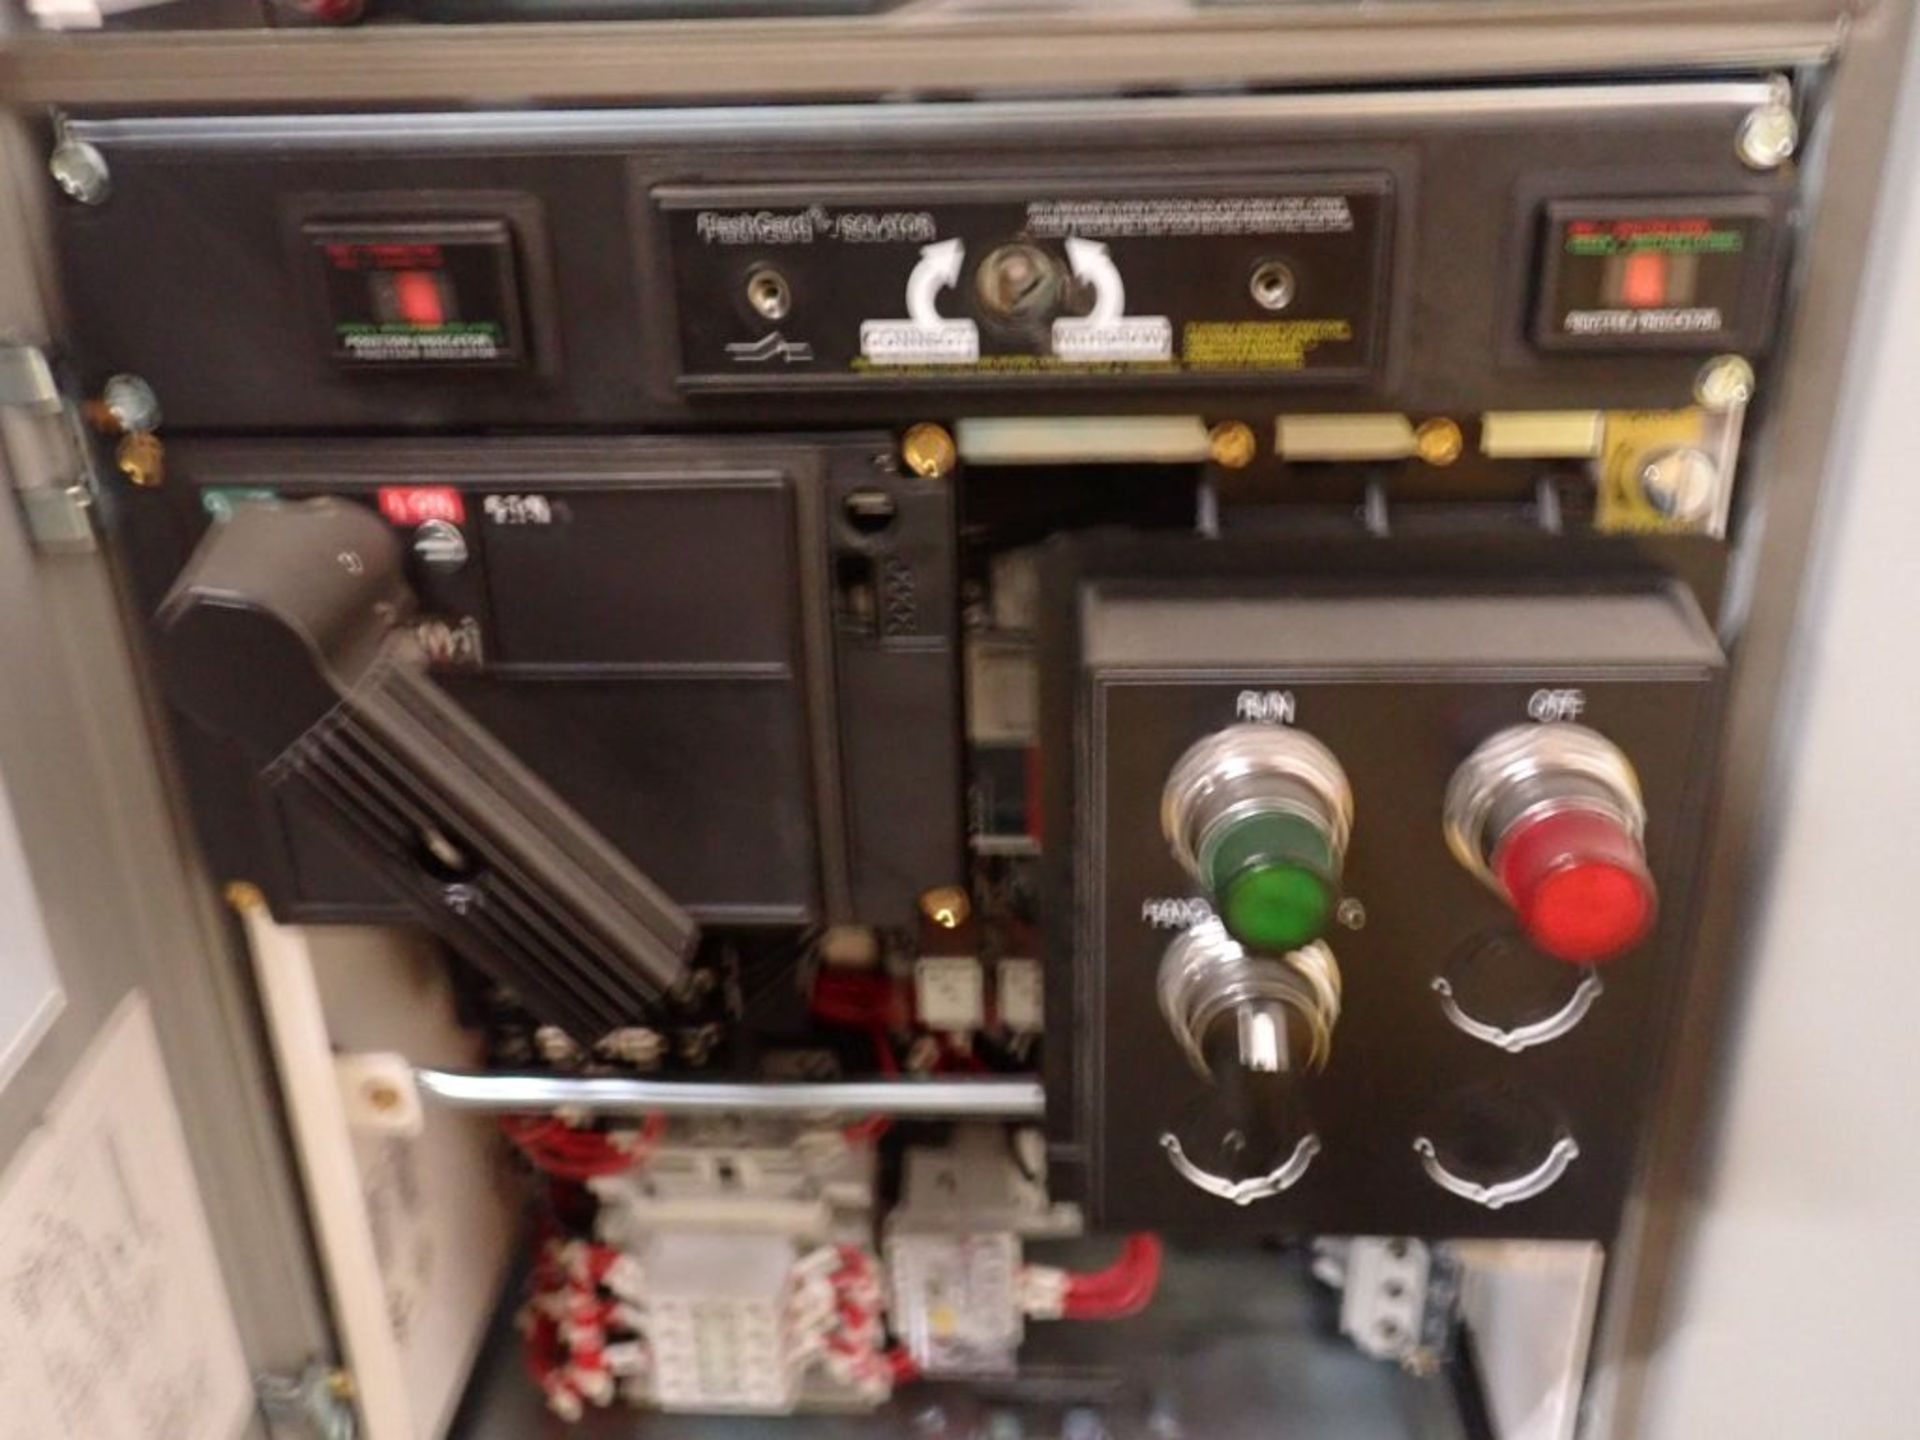 Eaton Freedom Flashgard Motor Control Center w/Components | (5) F206-15A-10HP; (4) F206-30A-10HP; ( - Image 80 of 84